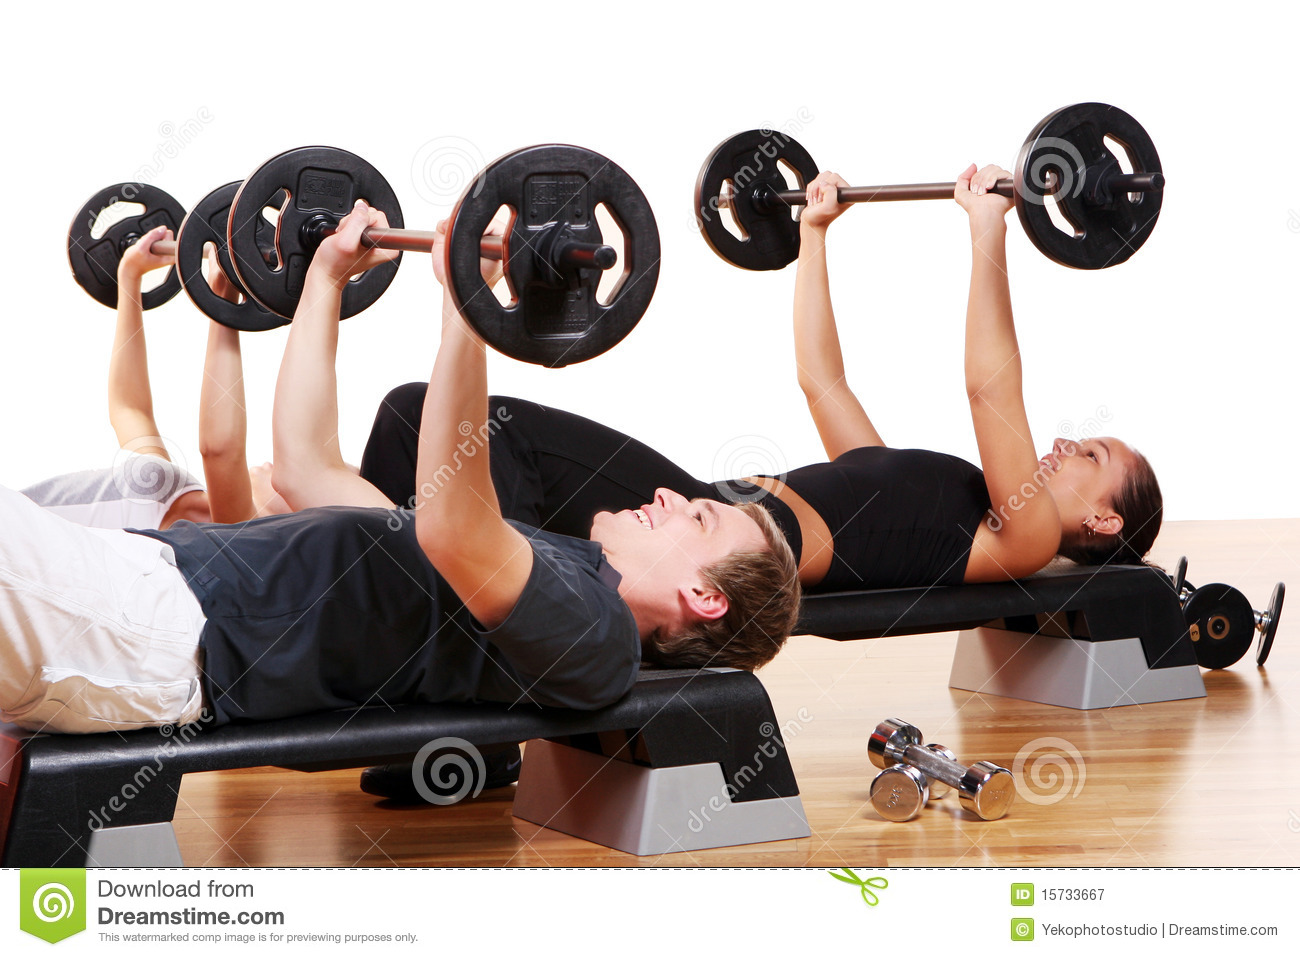 People Group Doing Fitness Exercises Stock Image - Image ...